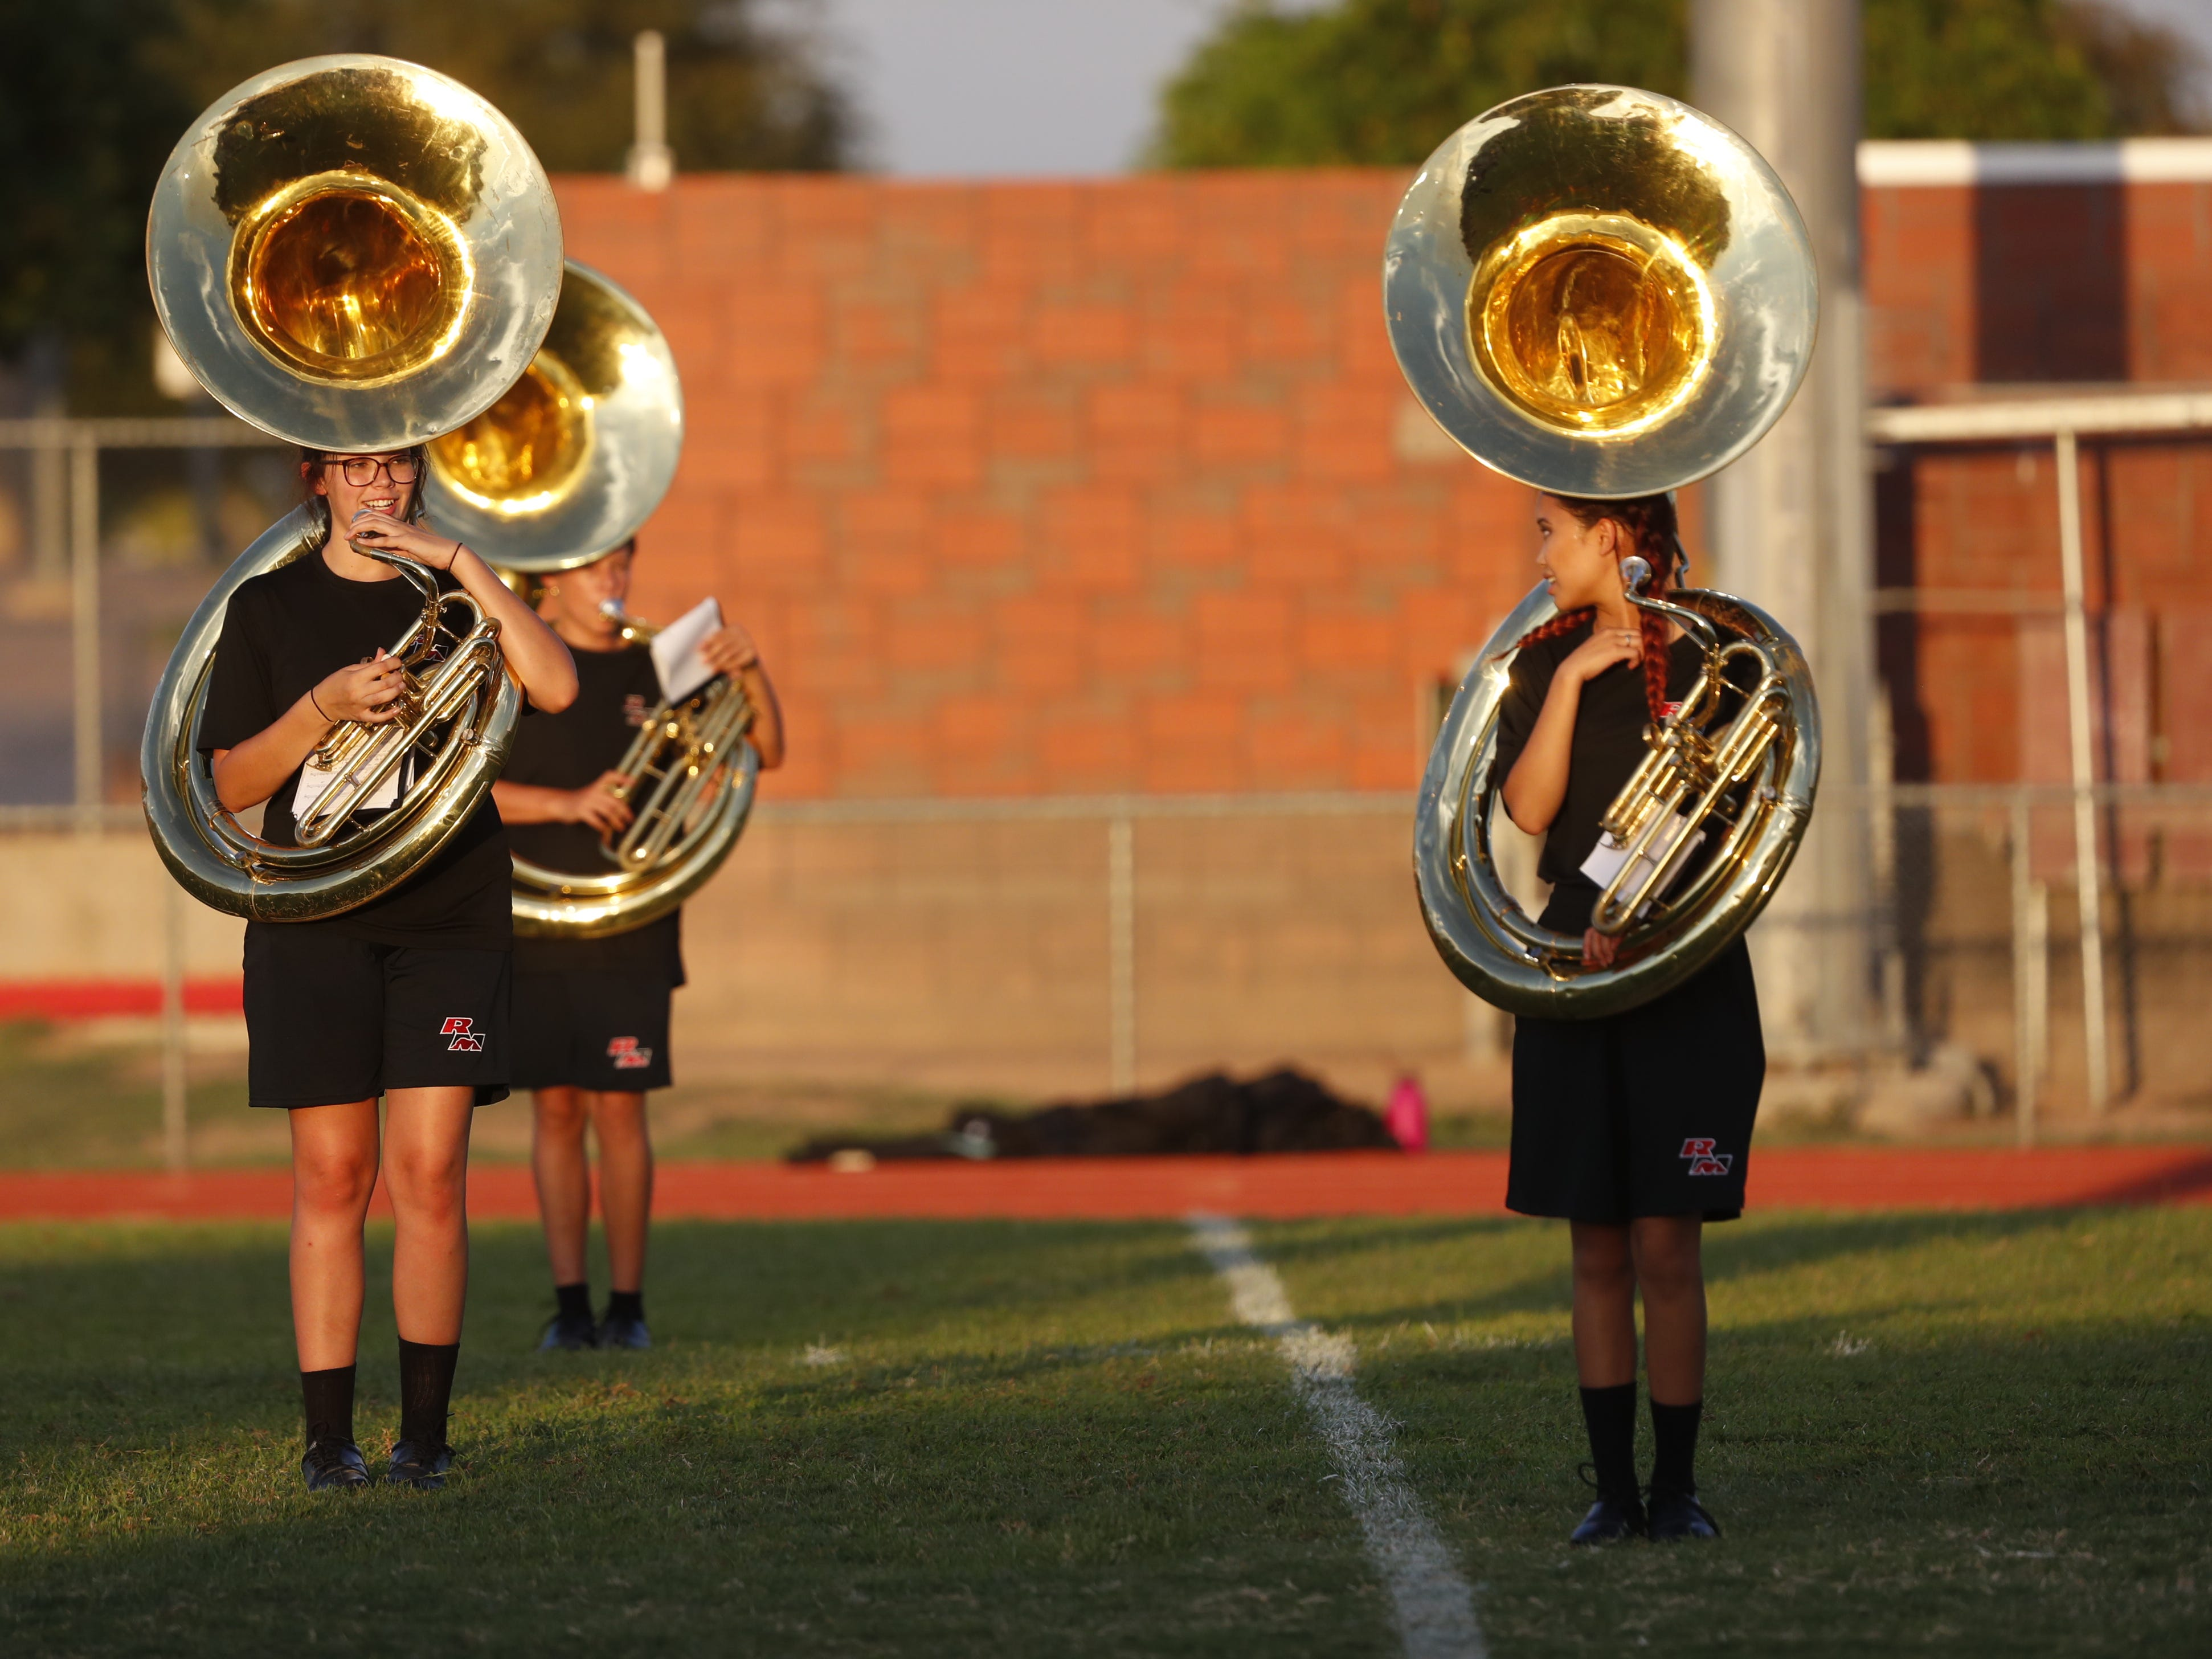 Red Mountain's band plays before a game at Cesar Chavez High School in Phoenix, Ariz. on Aug. 23, 2018.